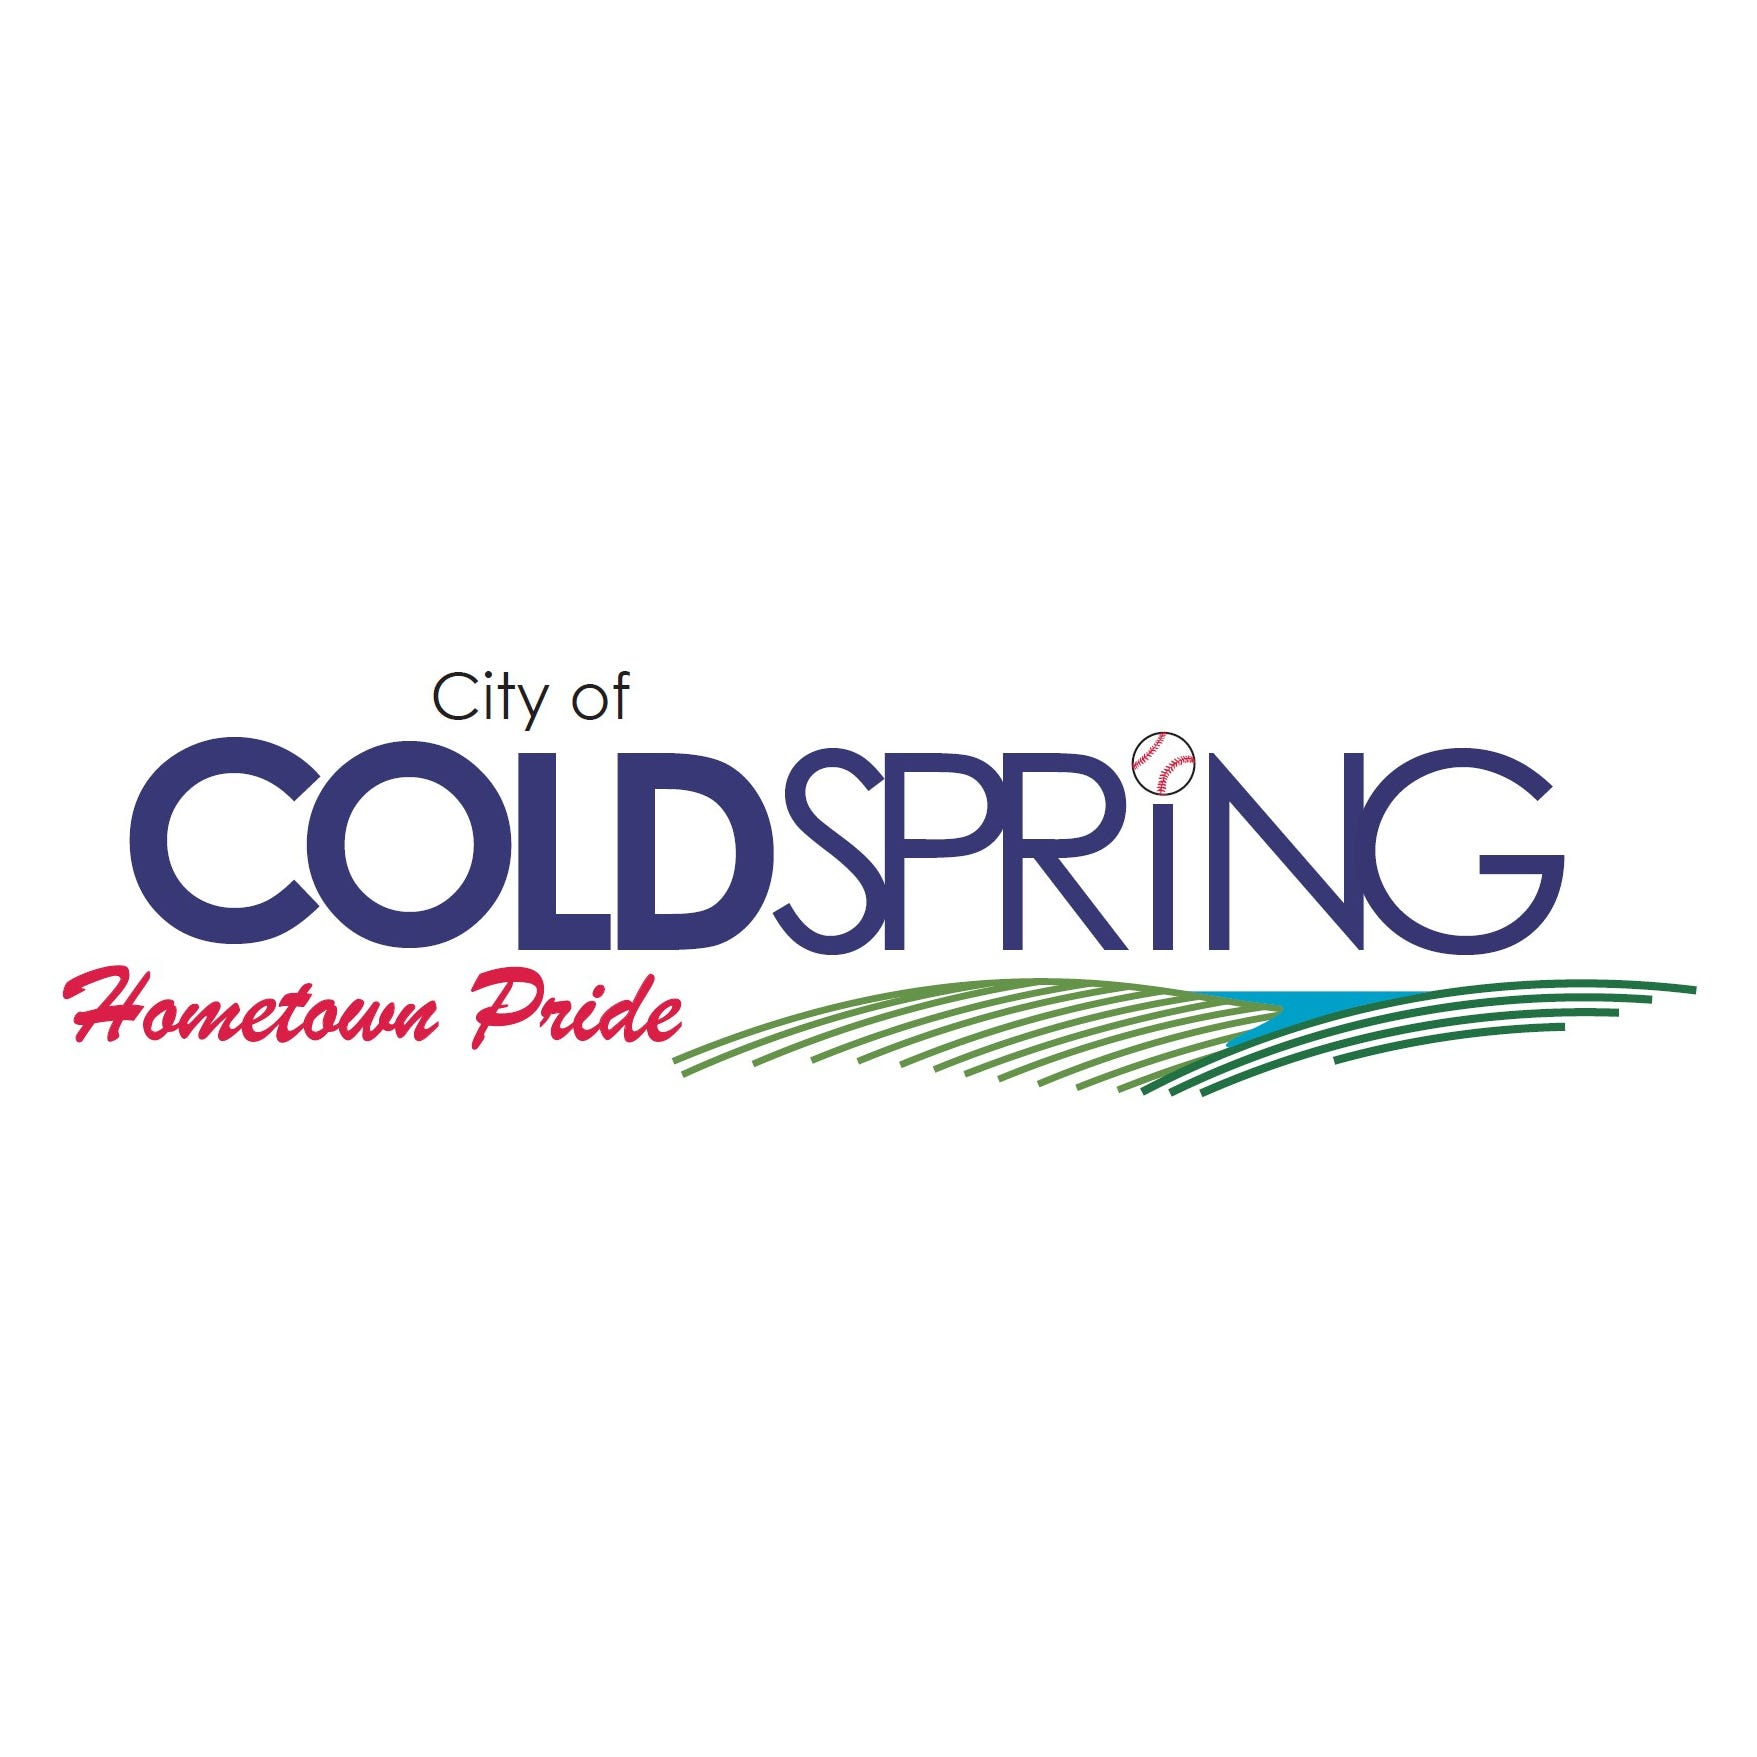 Essential Cold Spring: Baseball, water feature in new city logo